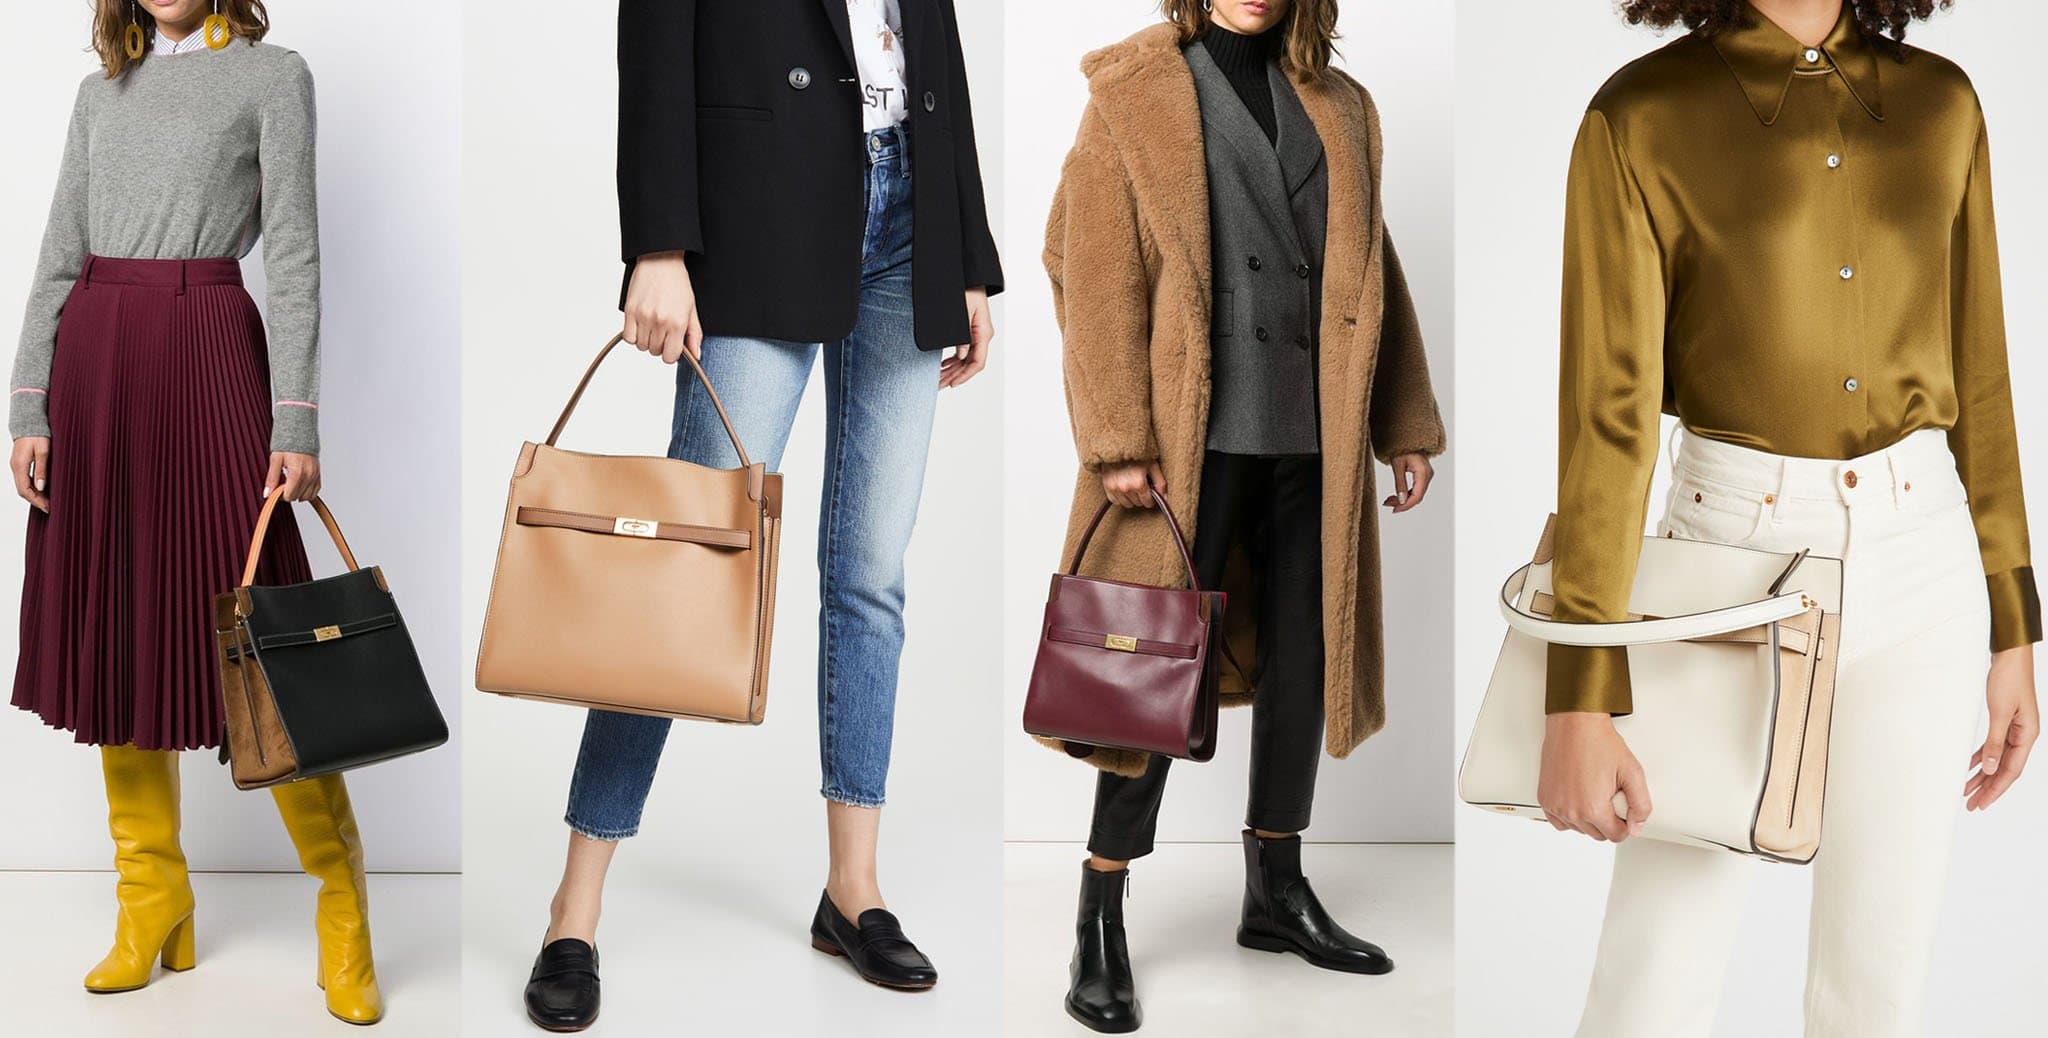 A practical yet classy bag that has plenty of room and a wraparound buckle that can be undone for a slouchy look